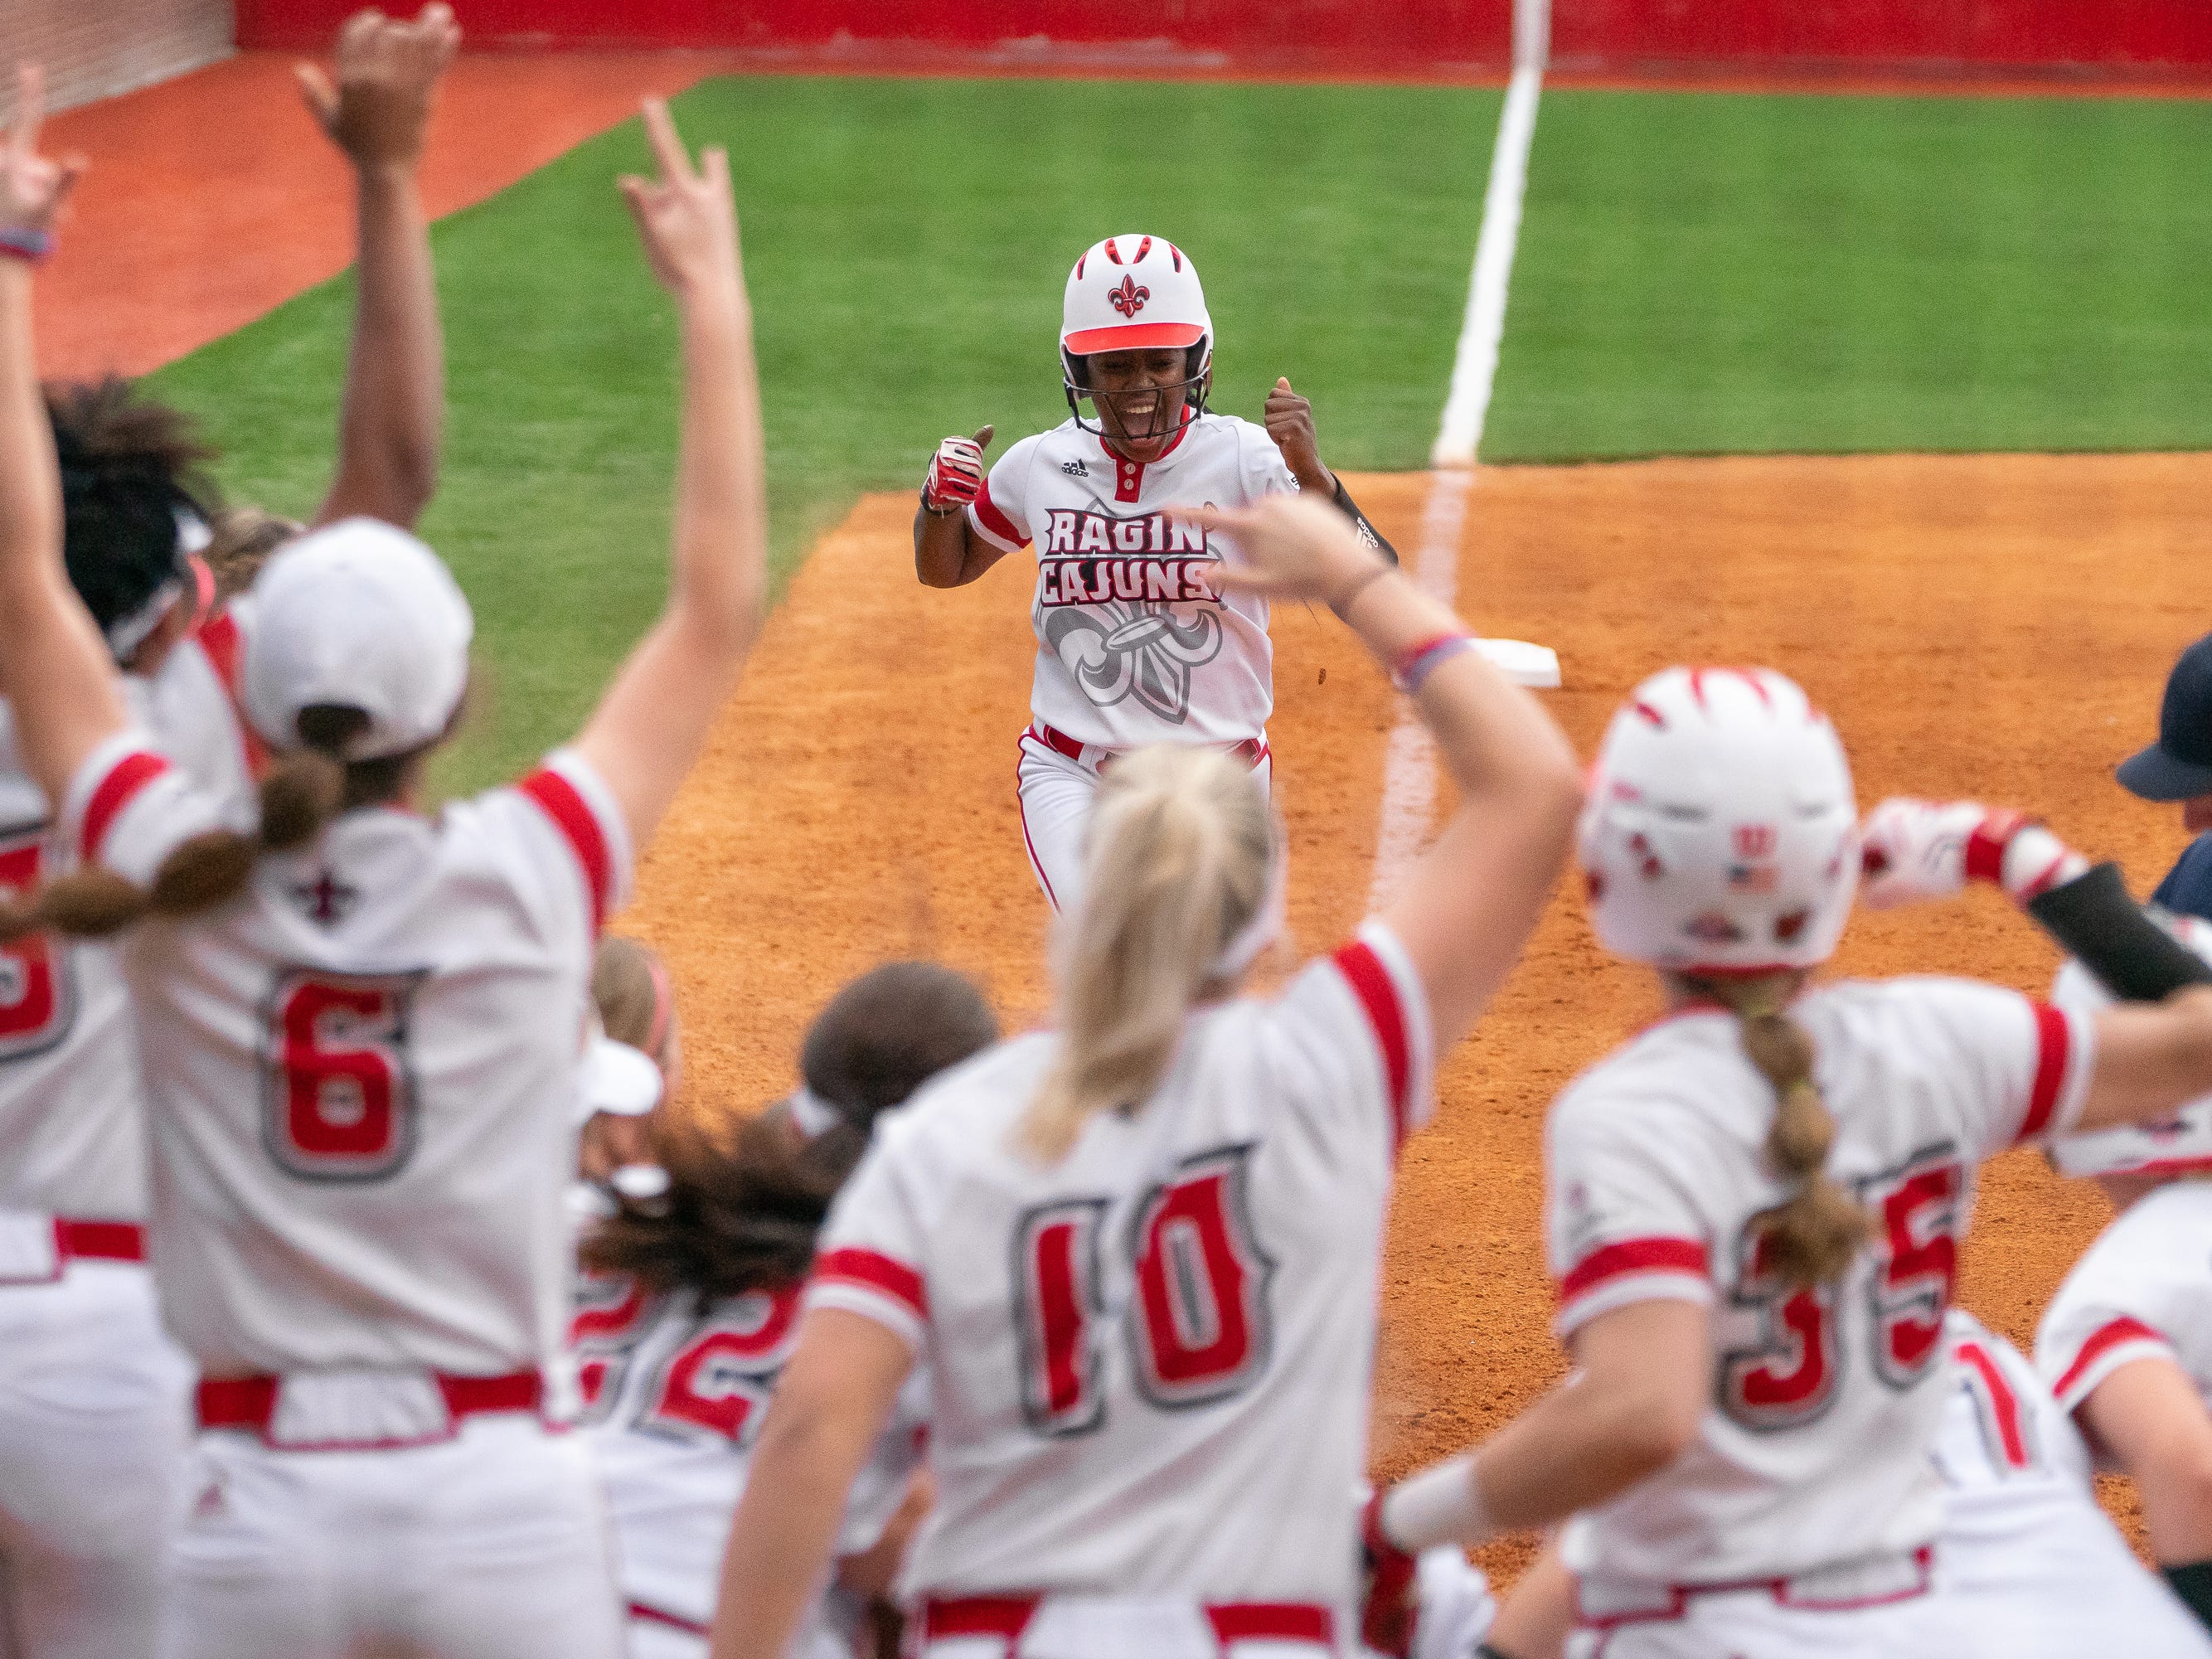 UL's Raina O'Neal excitedly runs to home plate after hitting a homerun as the Ragin' Cajuns play against the California Golden Bears at Lamson Park on February 11, 2019.